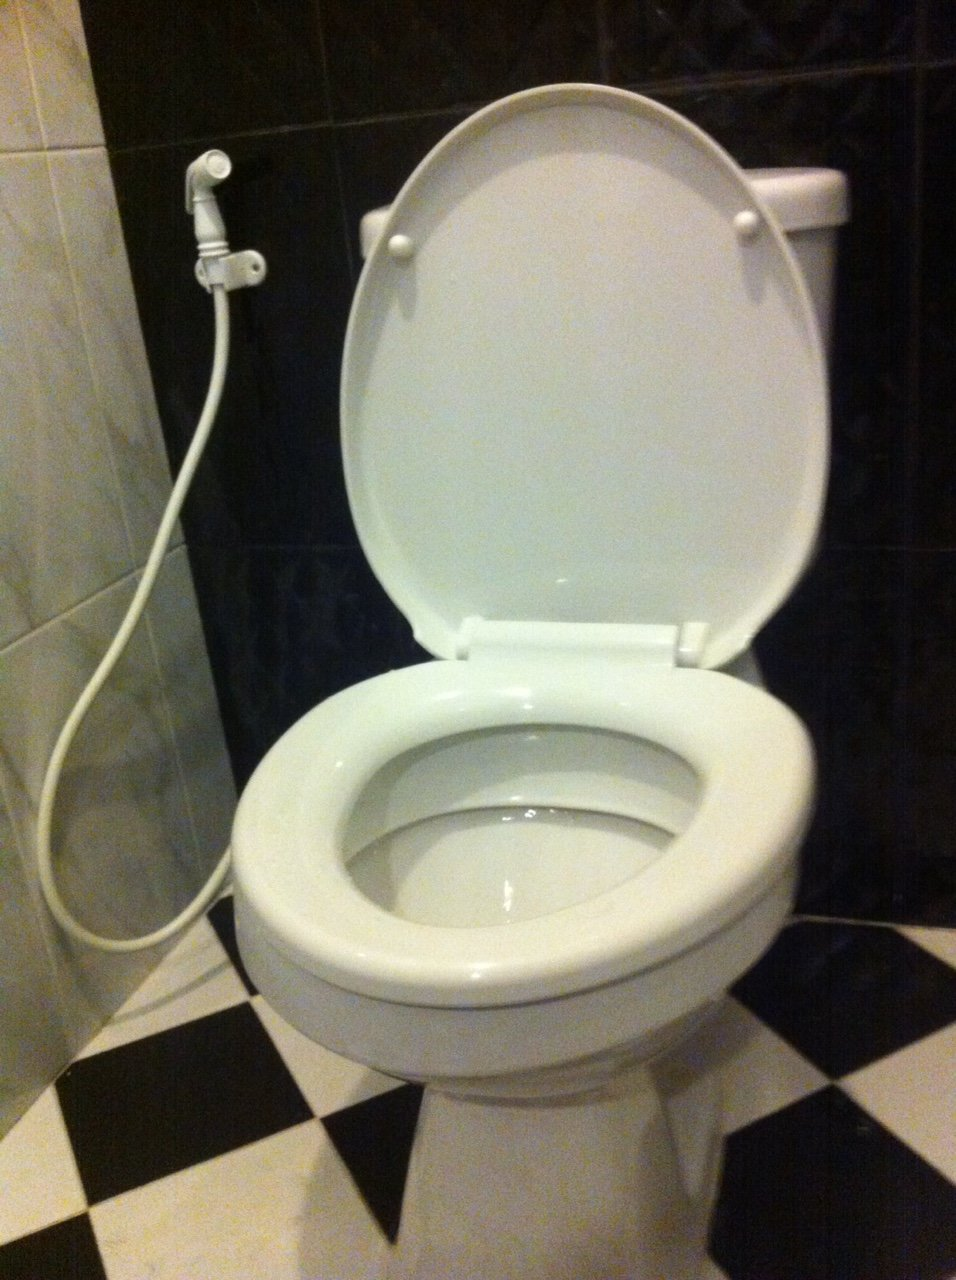 Never Have To Deal With A Clogged Toilet Again The Bum